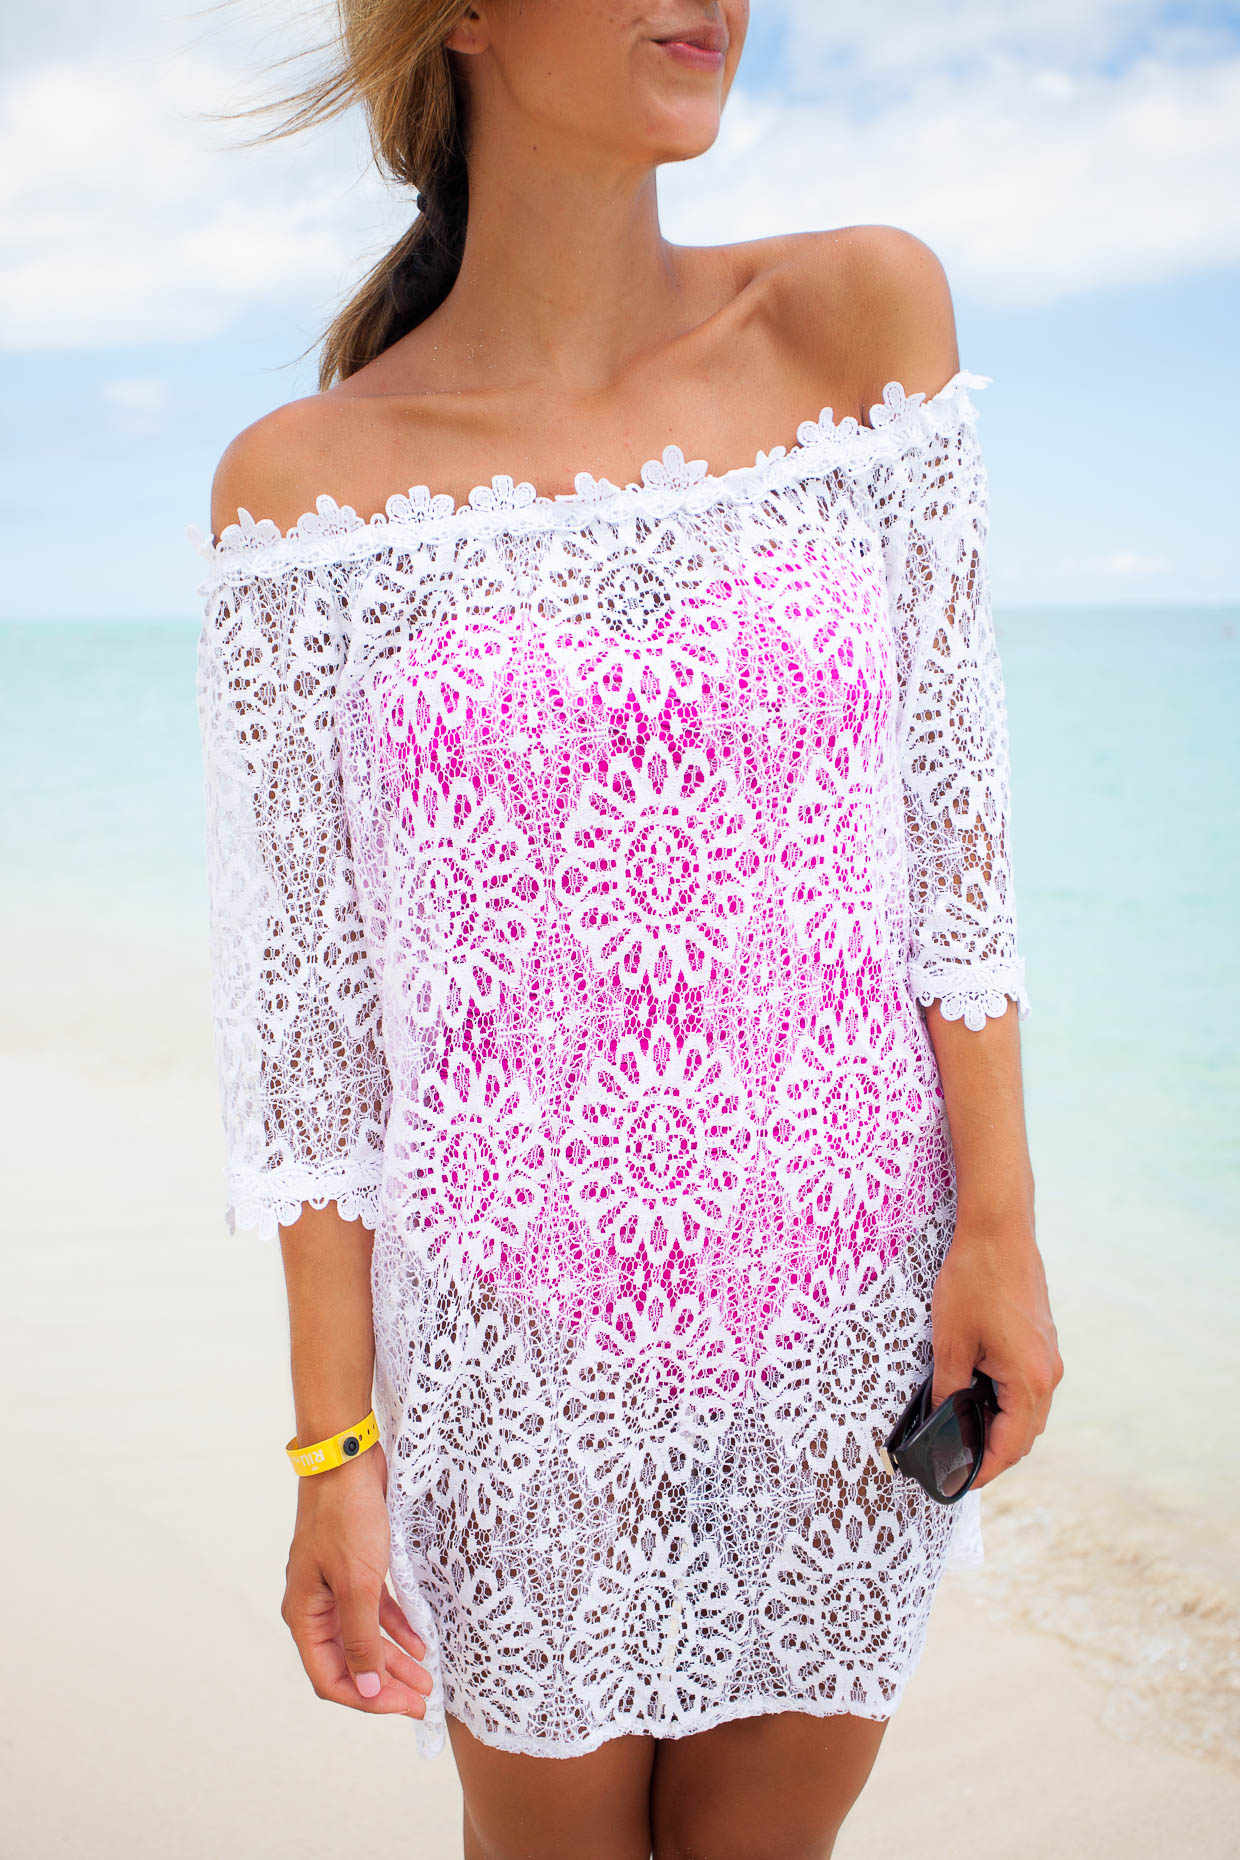 Fashion Blogger The Darling Detail is wearing a La Blanca Twist Front Bandeau One-Piece Swimsuit and a Topshop Lace Bardot Cover-Up Dress.